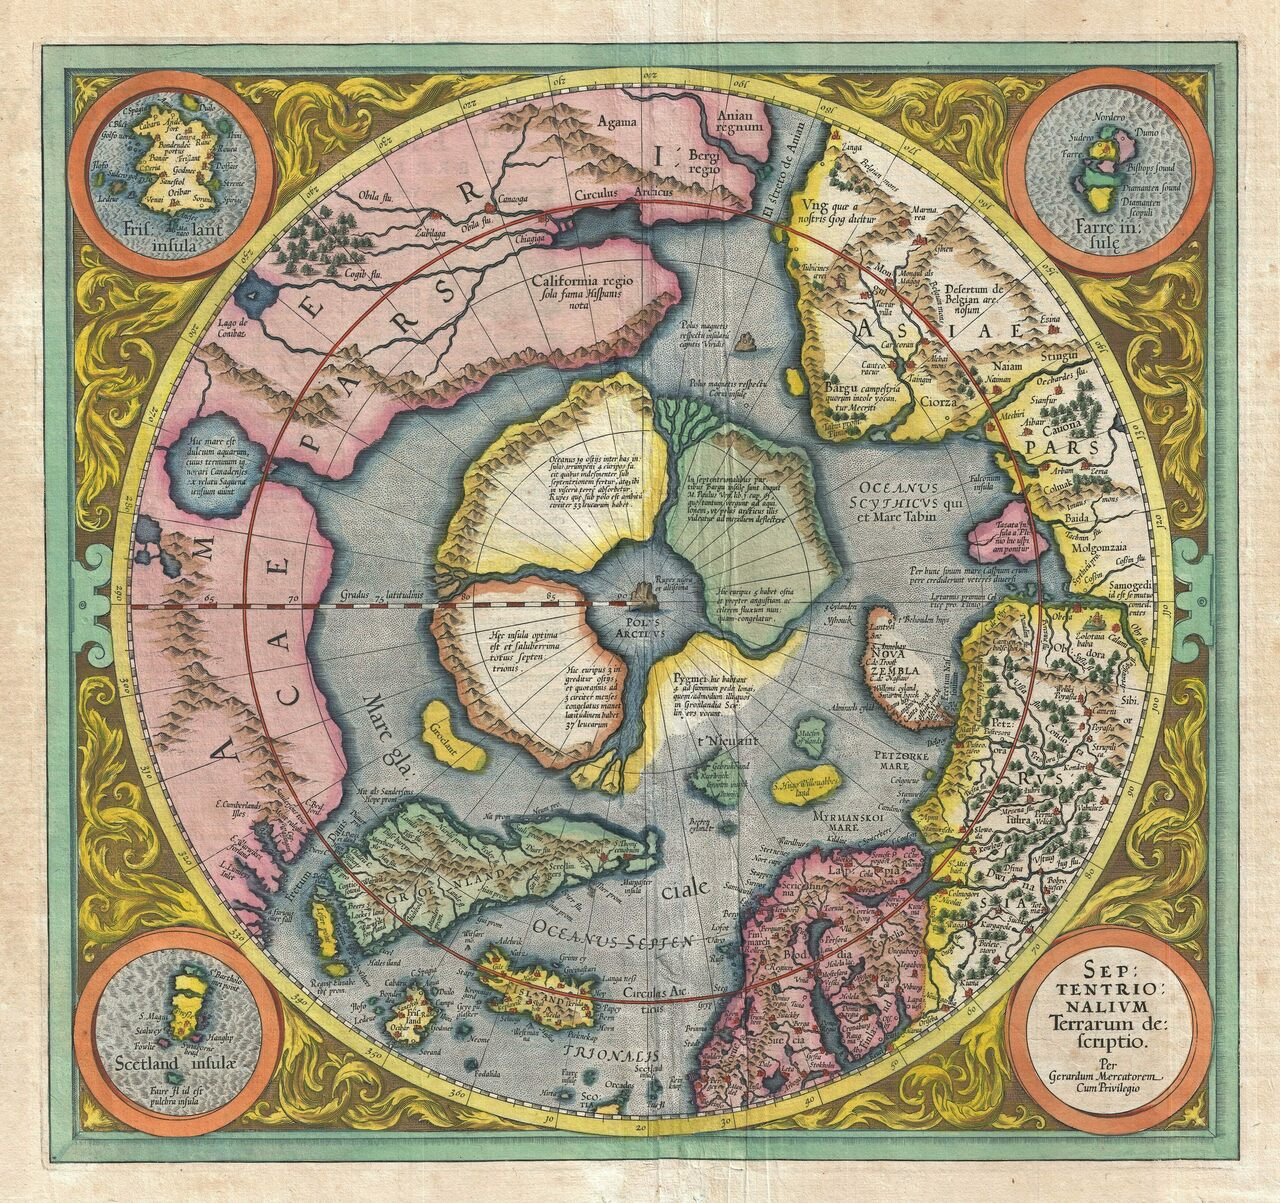 The Mysteries of the FirstEver Map of the North Pole  Atlas Obscura